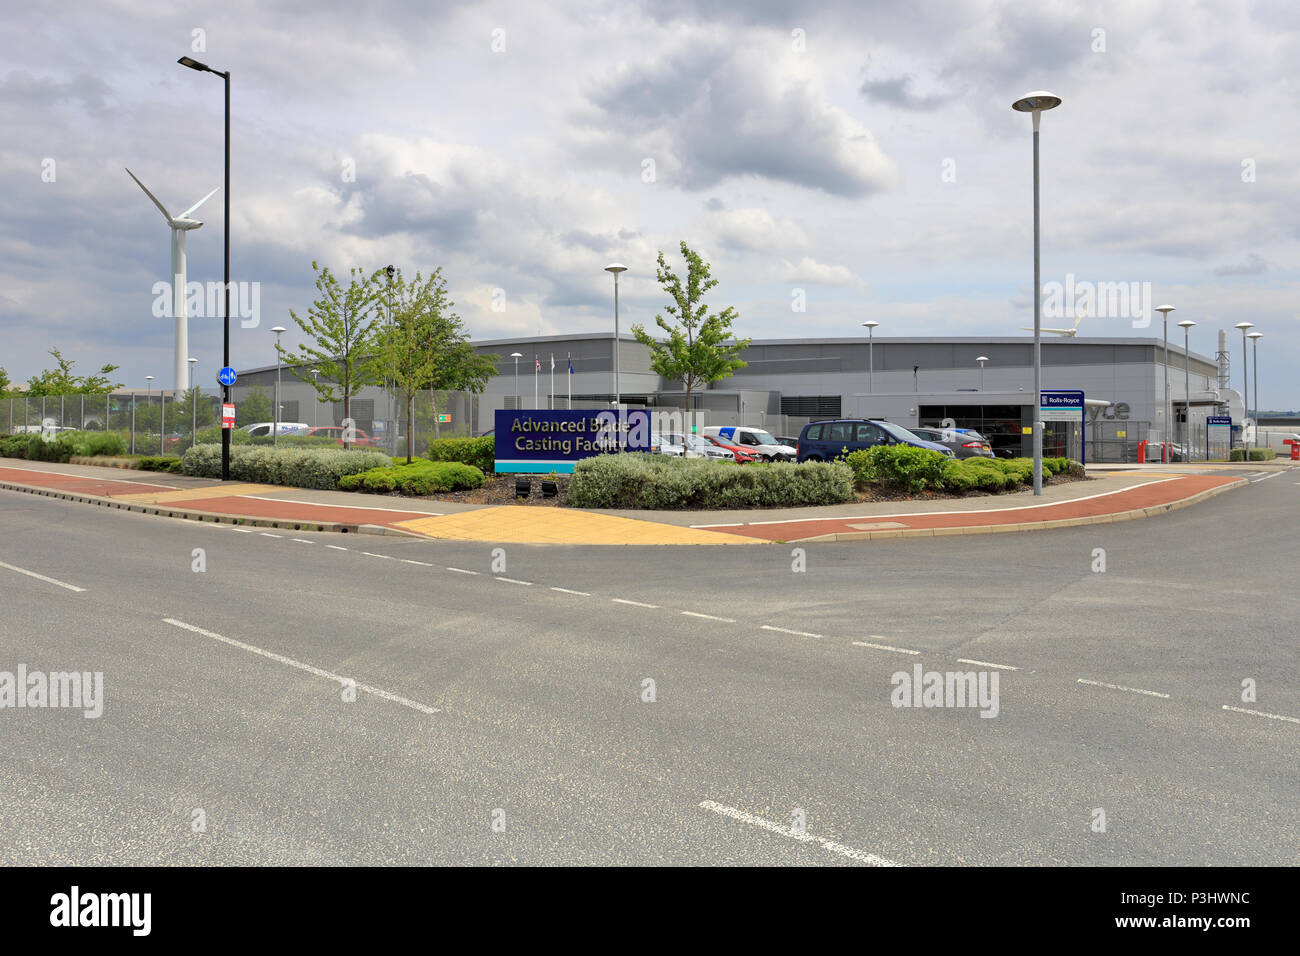 Rolls-Royce Advanced Blade Casting Facility building at the Advanced Manufacturing Park, Catcliffe near Rotherham, South Yorkshire, England, UK. - Stock Image